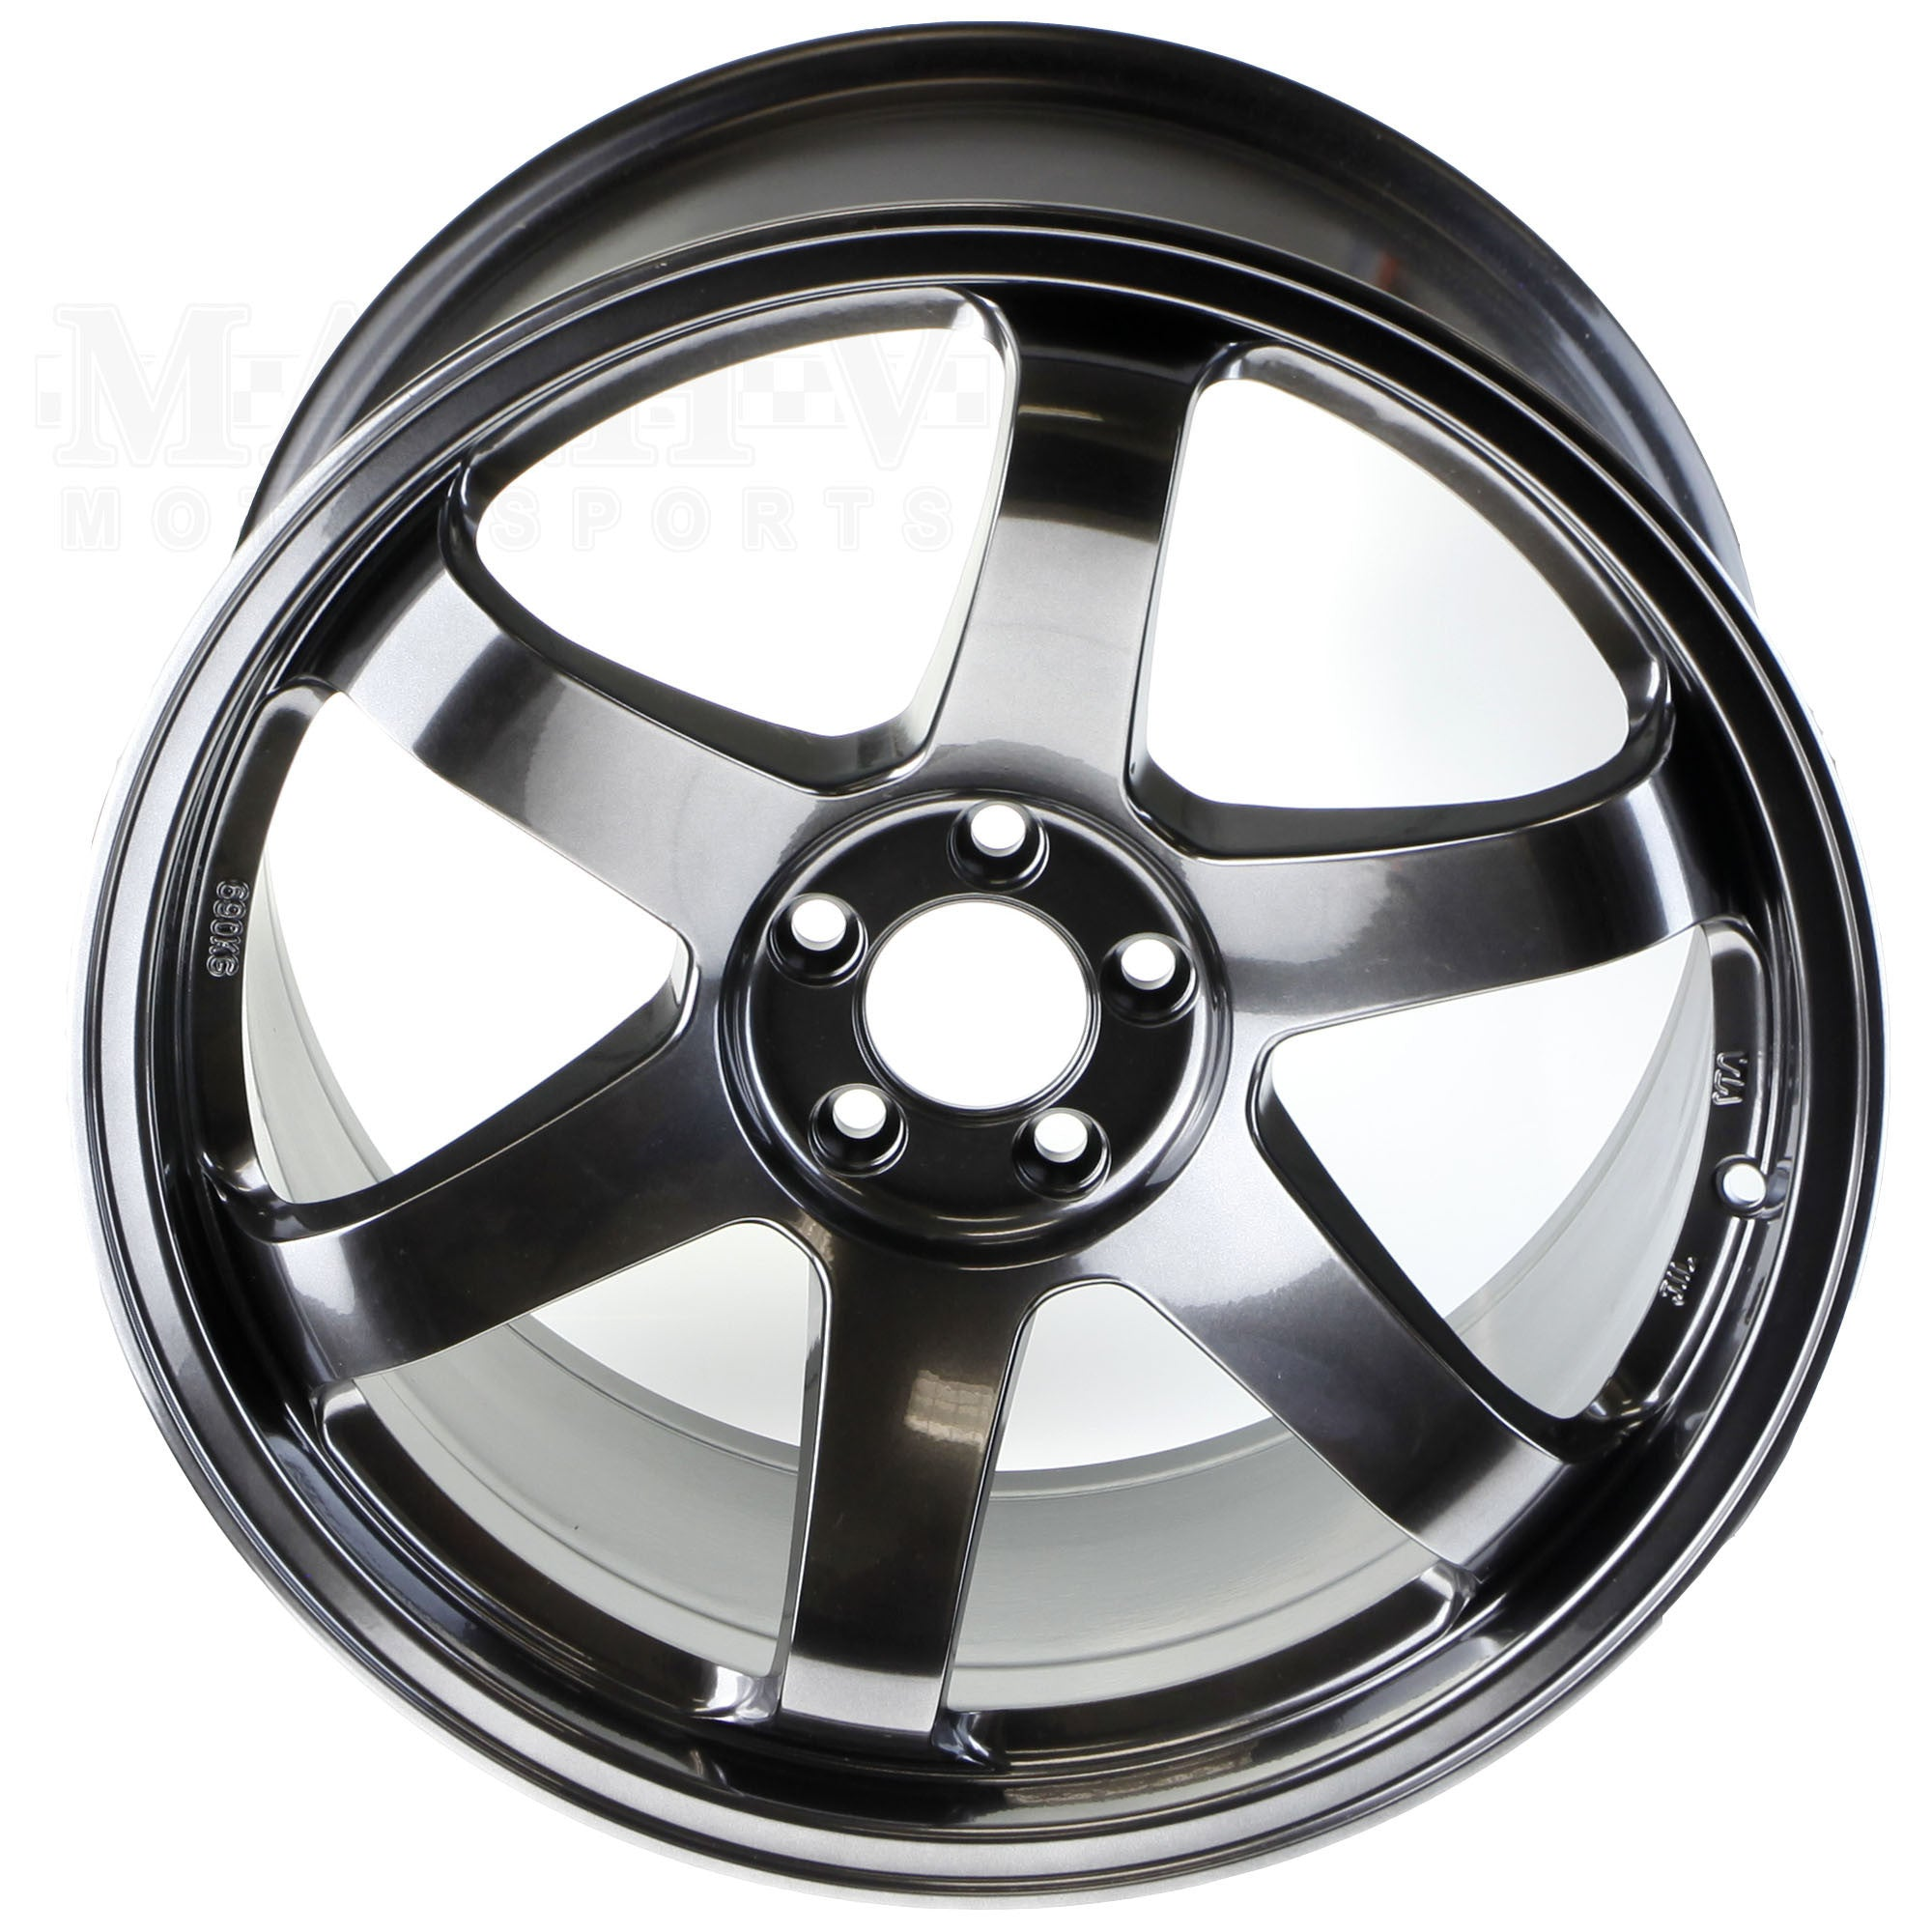 Cars With 5x108 Bolt Pattern Best Inspiration Ideas